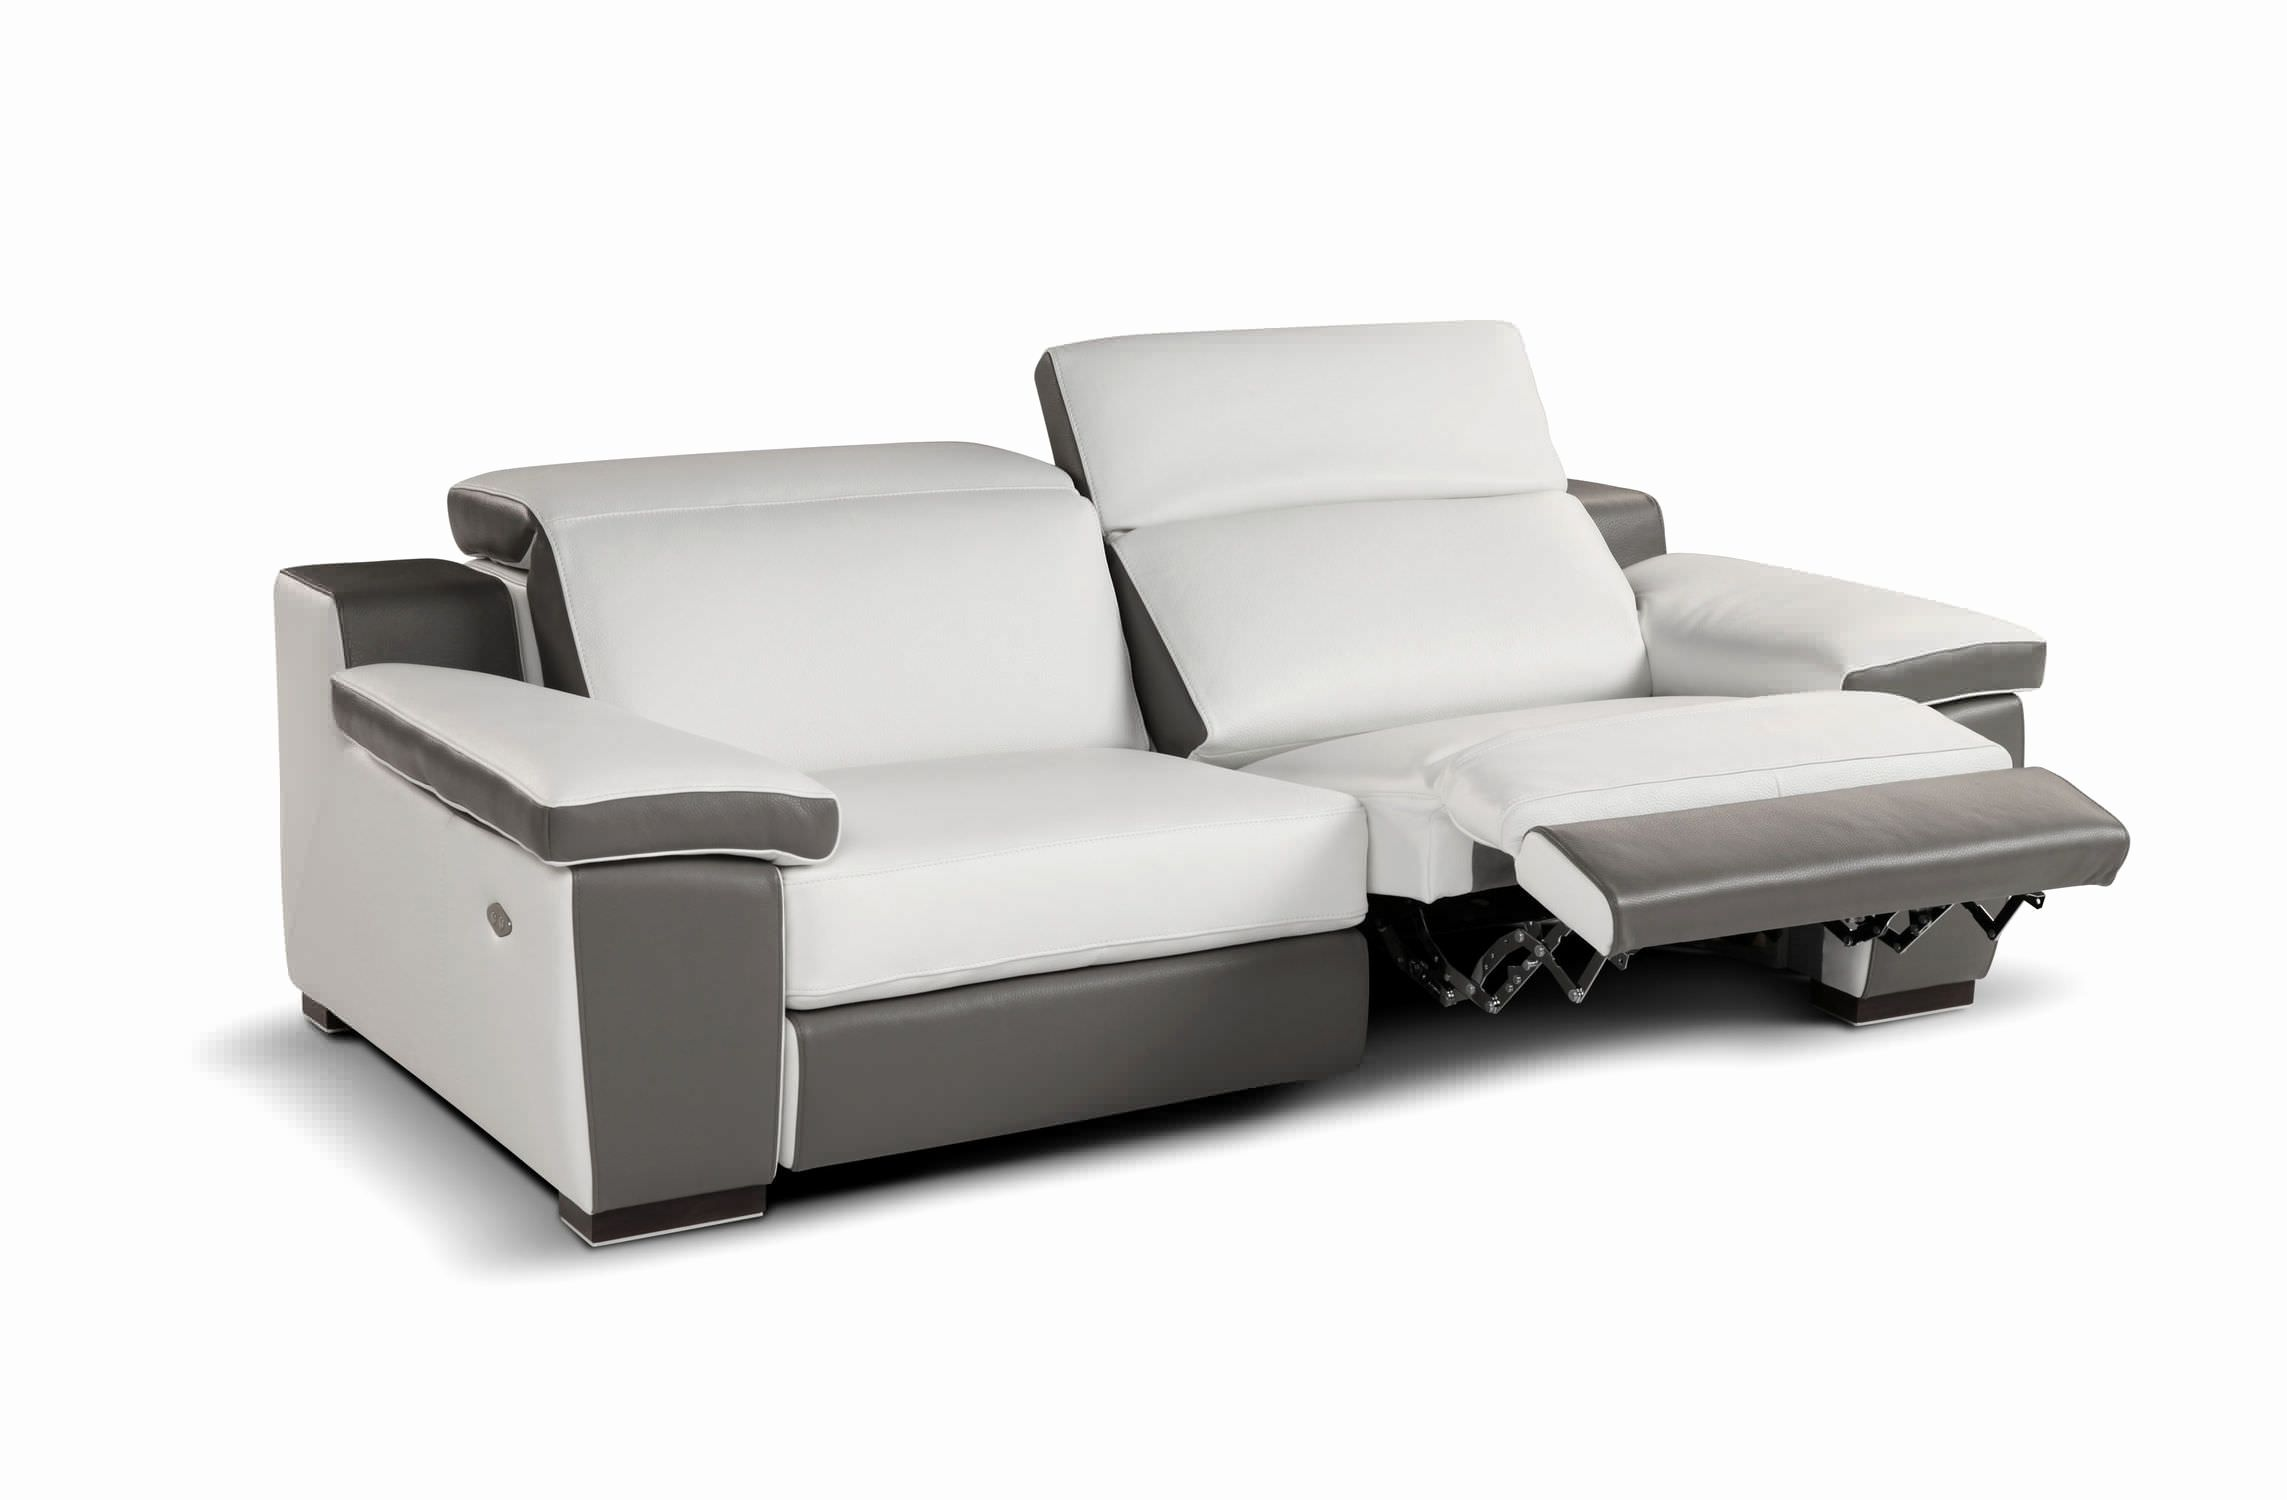 Lovely Reclining Sofa Modern Photos Luxury Recliners Chairs Contemporary Couch